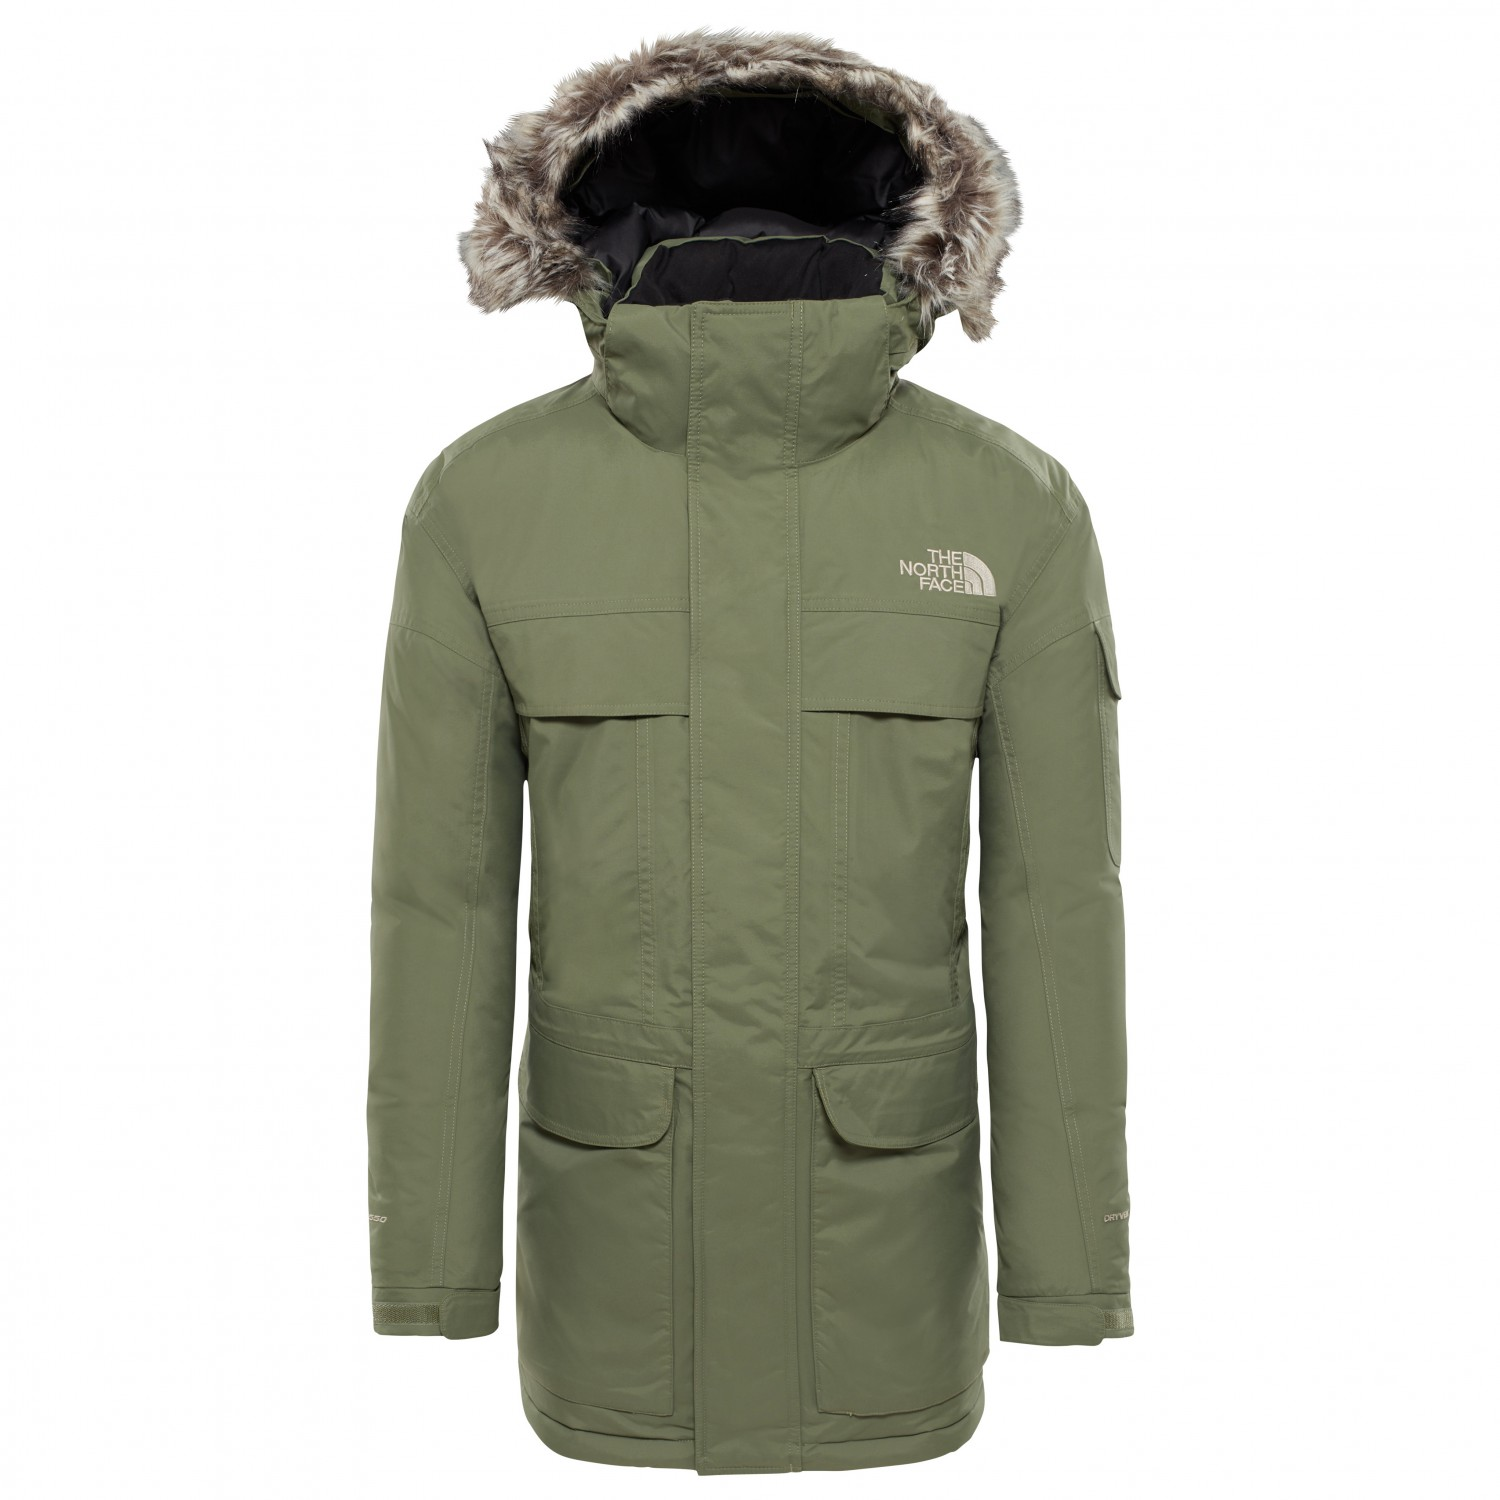 premium selection ed8d1 47f51 the-north-face-mc-murdo-veste-dhiver.jpg